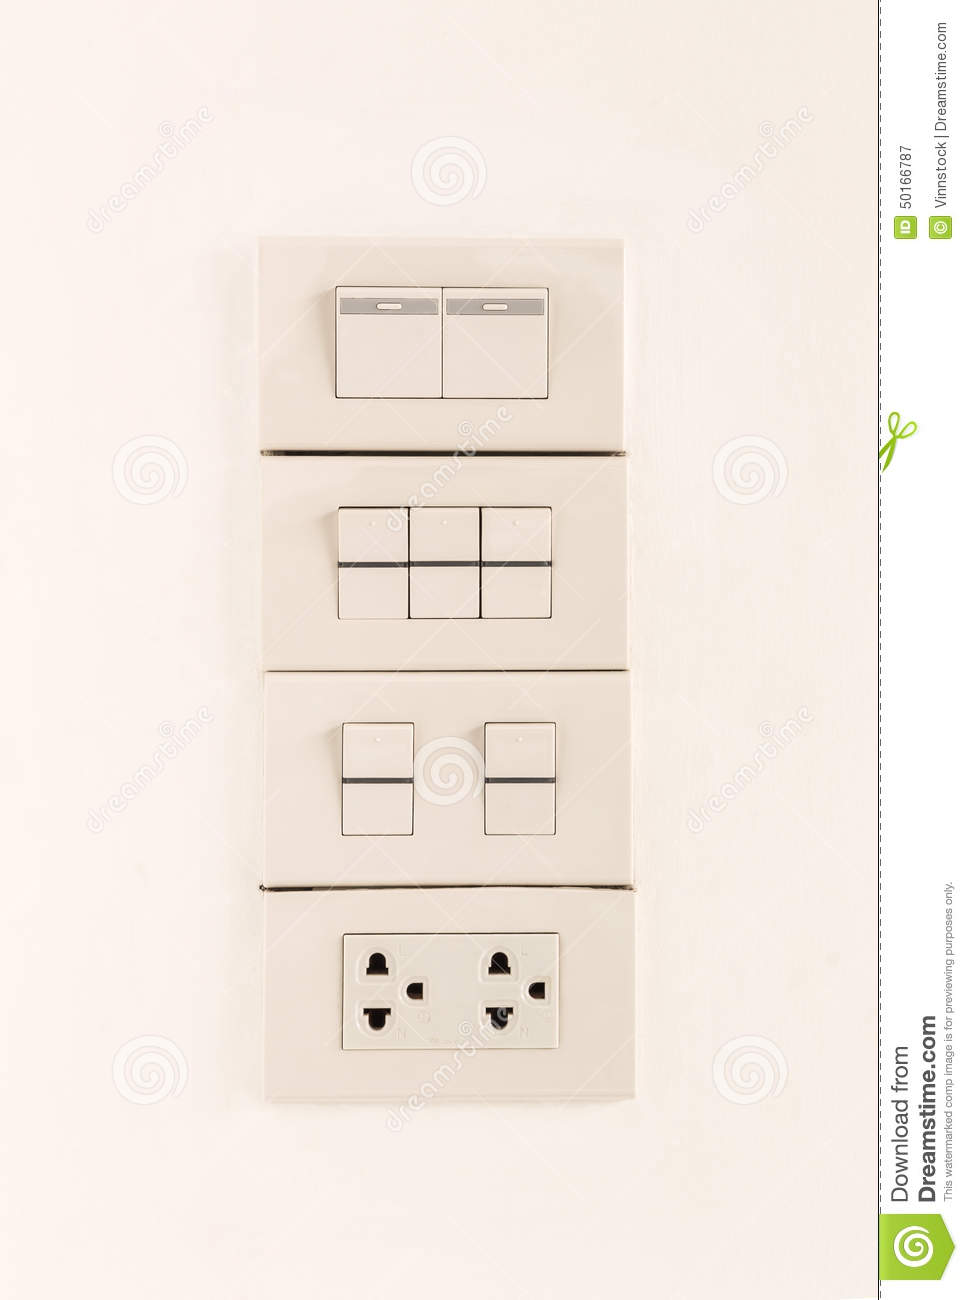 Electric Light Switches In Of Position And Sockets Stock Image ... for Light Switch Off Position  186ref